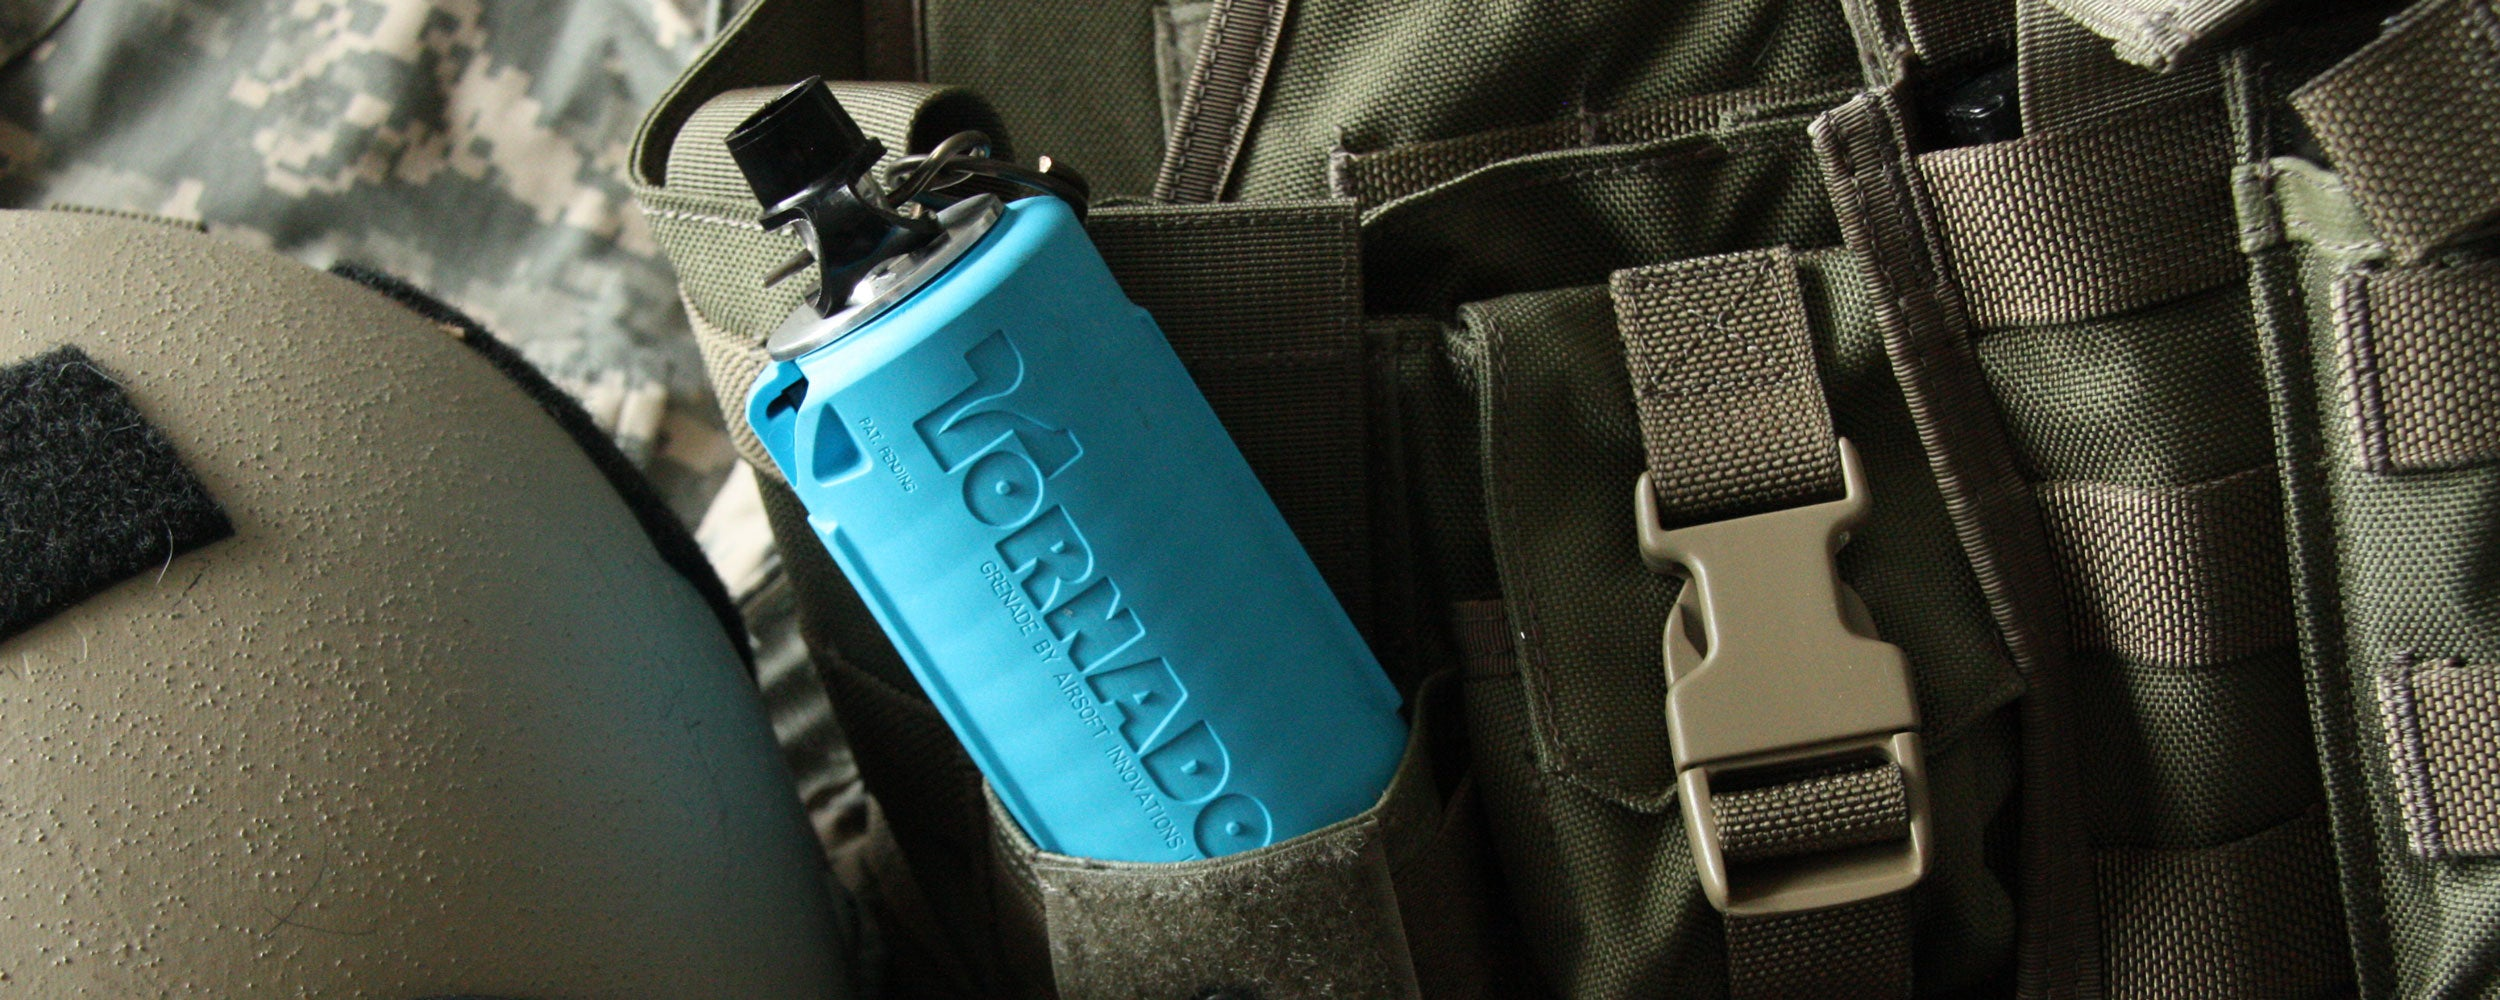 Tornado Grenade - How it Works | Airsoft Innovations Inc